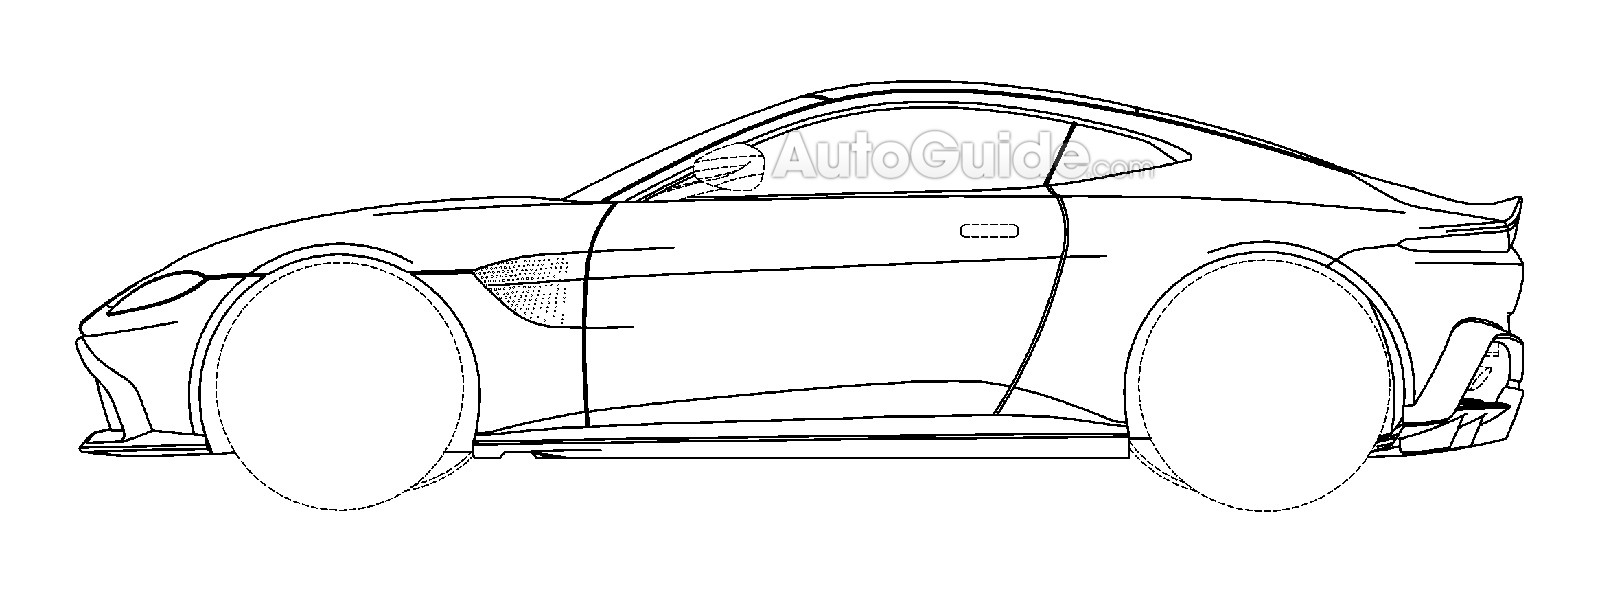 2018 Aston Martin Vantage Patent Drawing ...